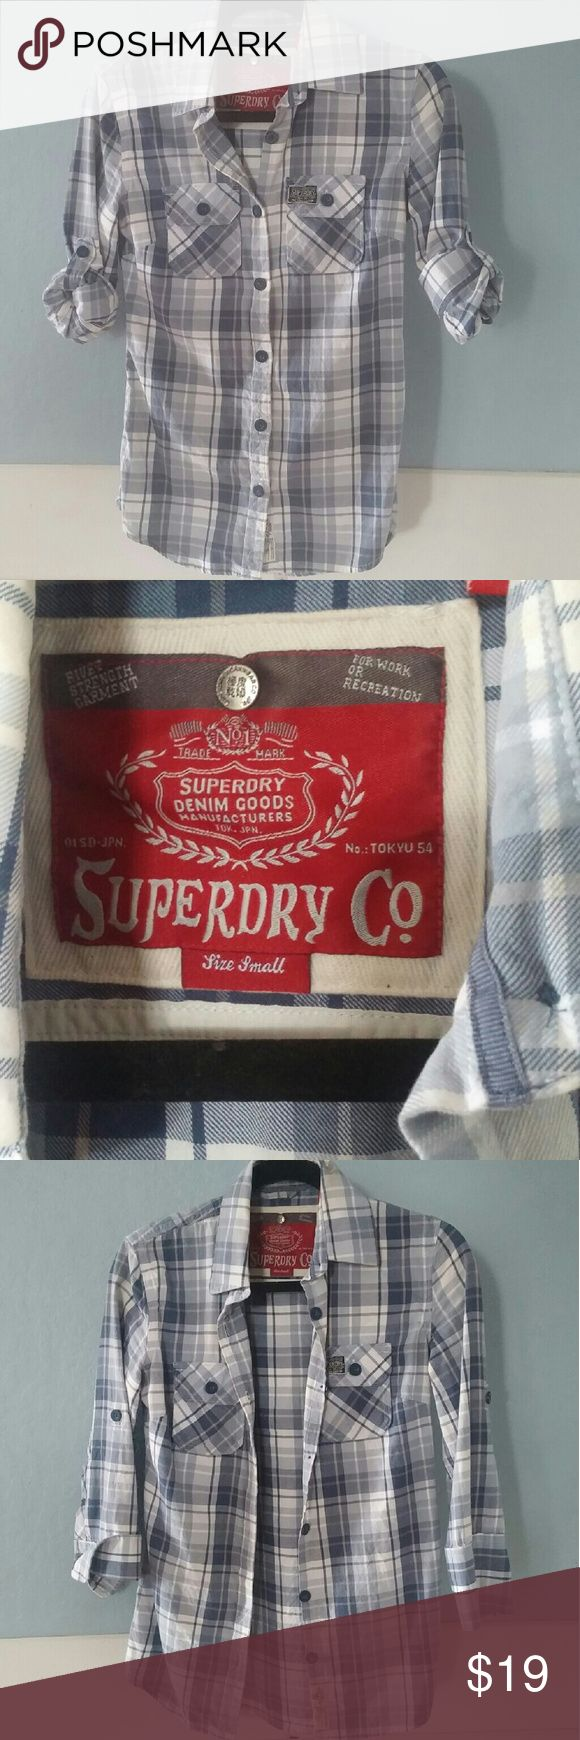 Superdry Plaid button up Like new, heavyweight cotton button up. Bought at Nordstrom Superdry Tops Button Down Shirts